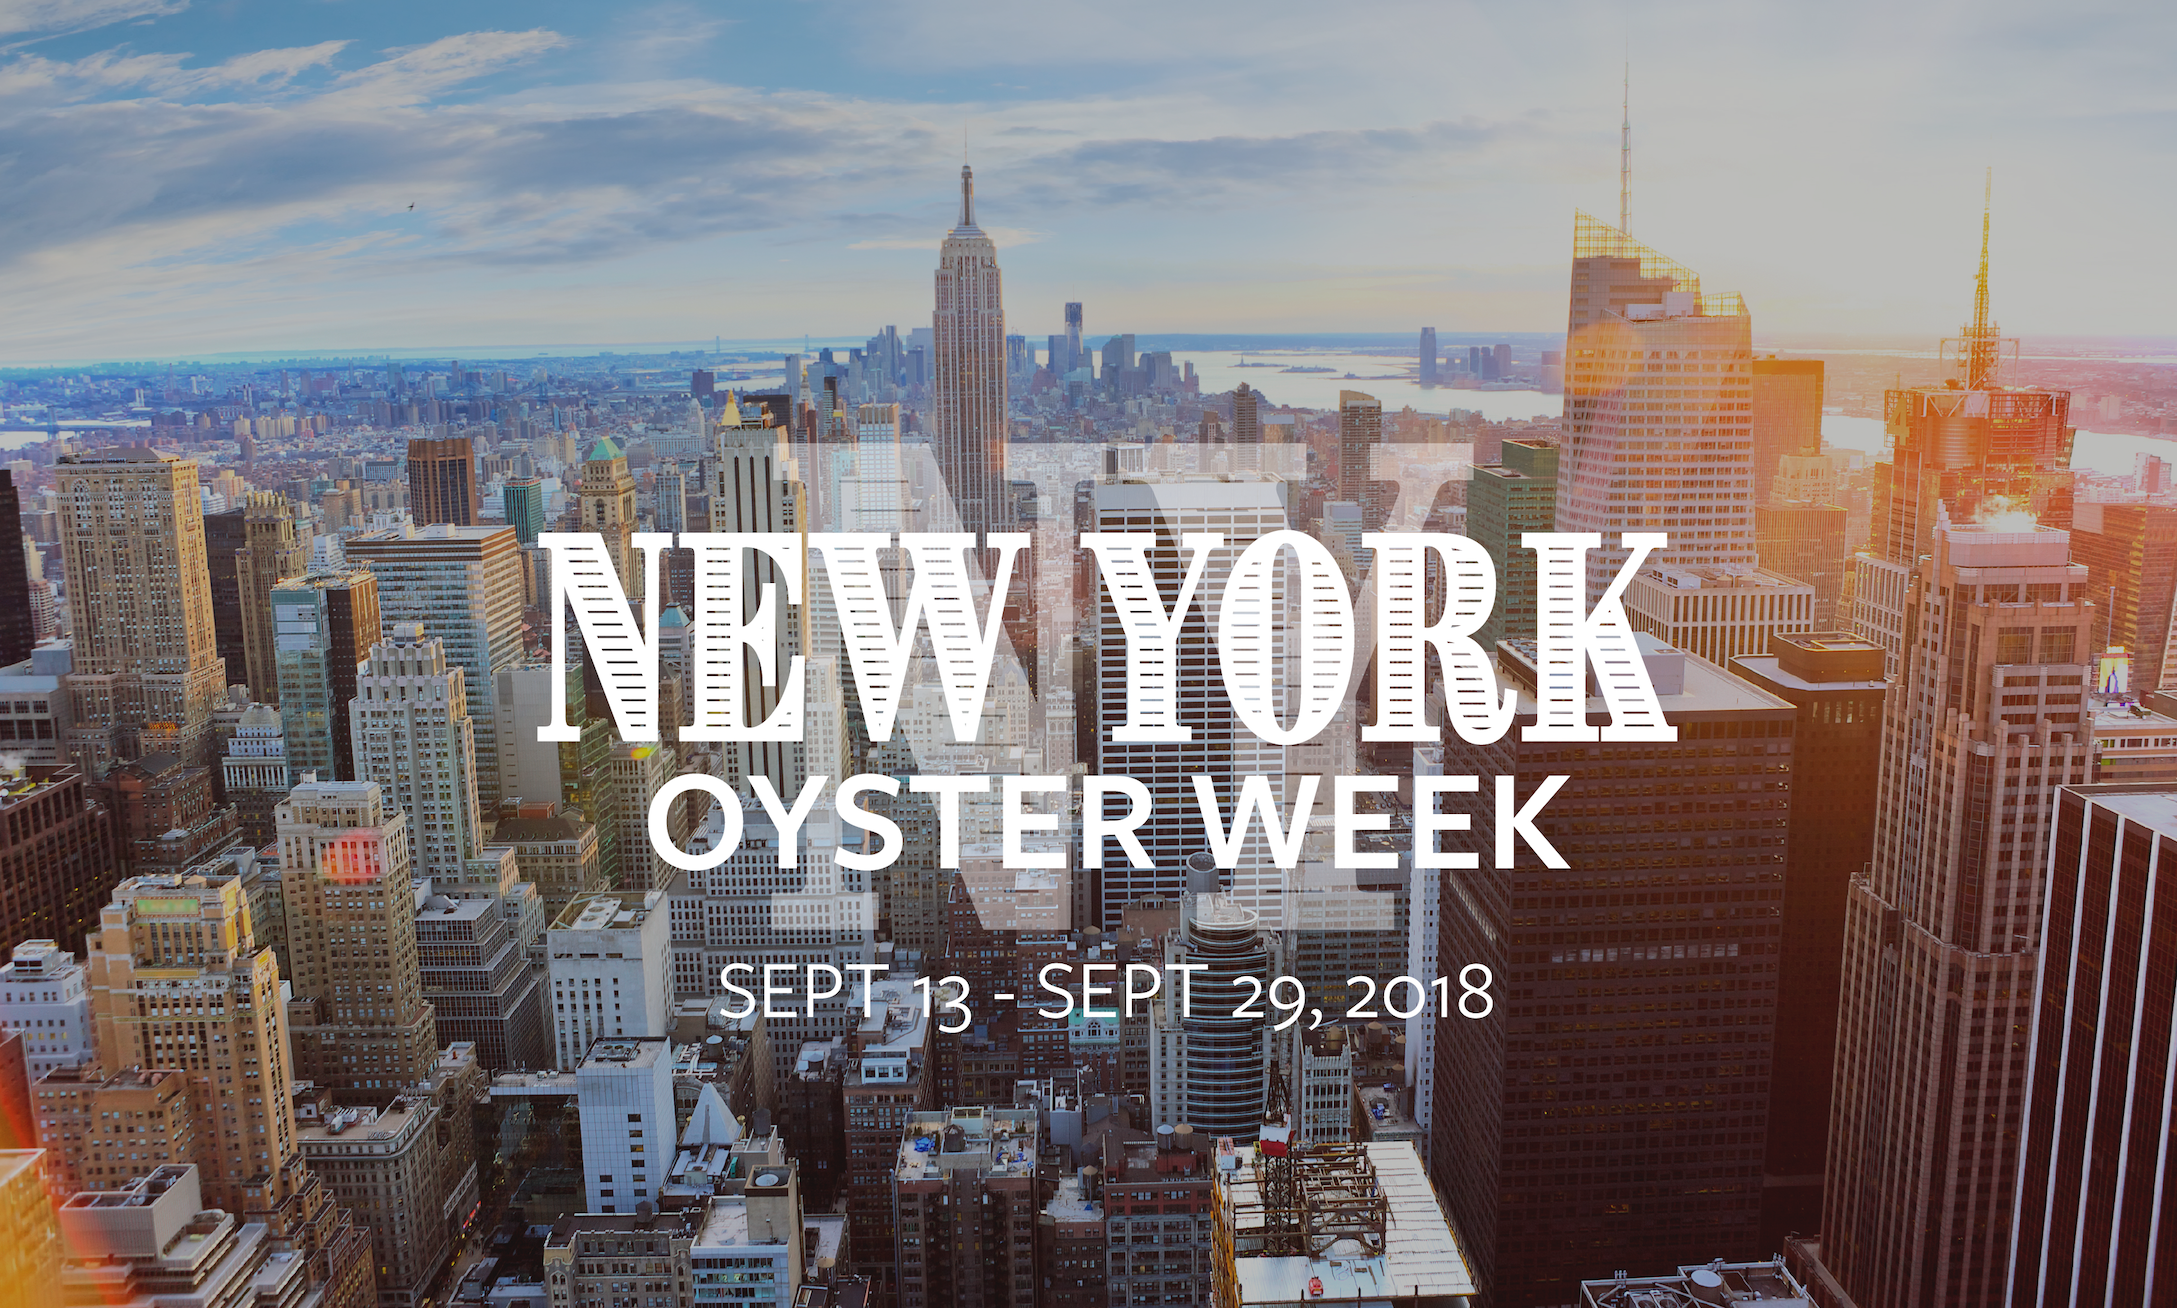 New York Oyster Week on image 3 2.png